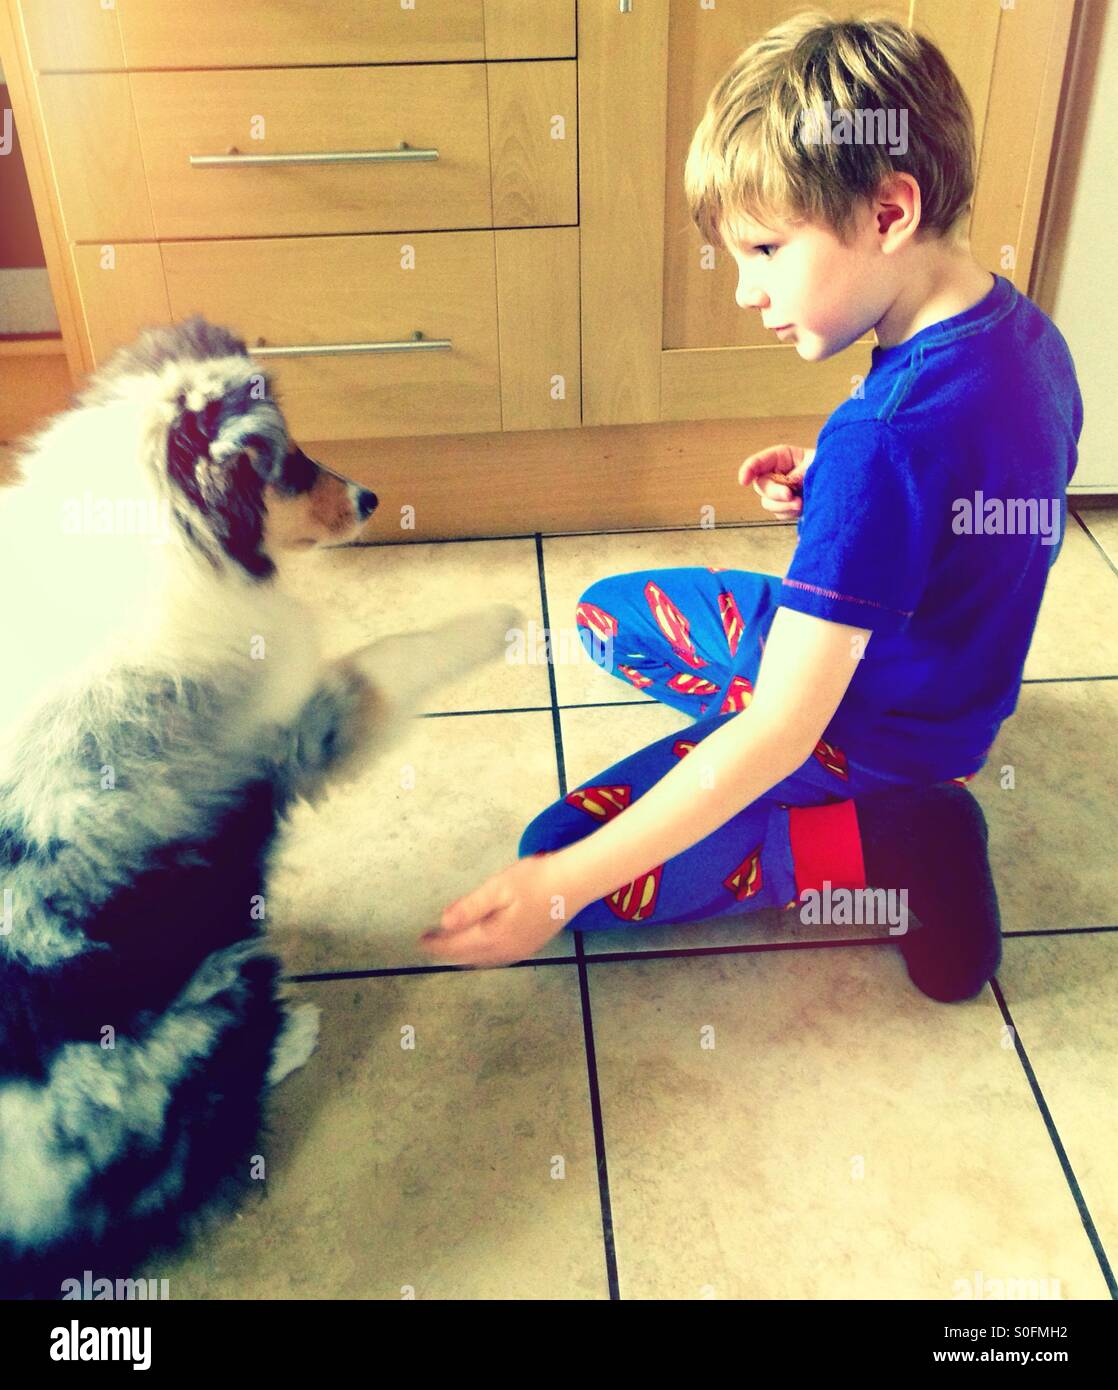 Give a boy a paw. Puppy giving a boy a paw. - Stock Image